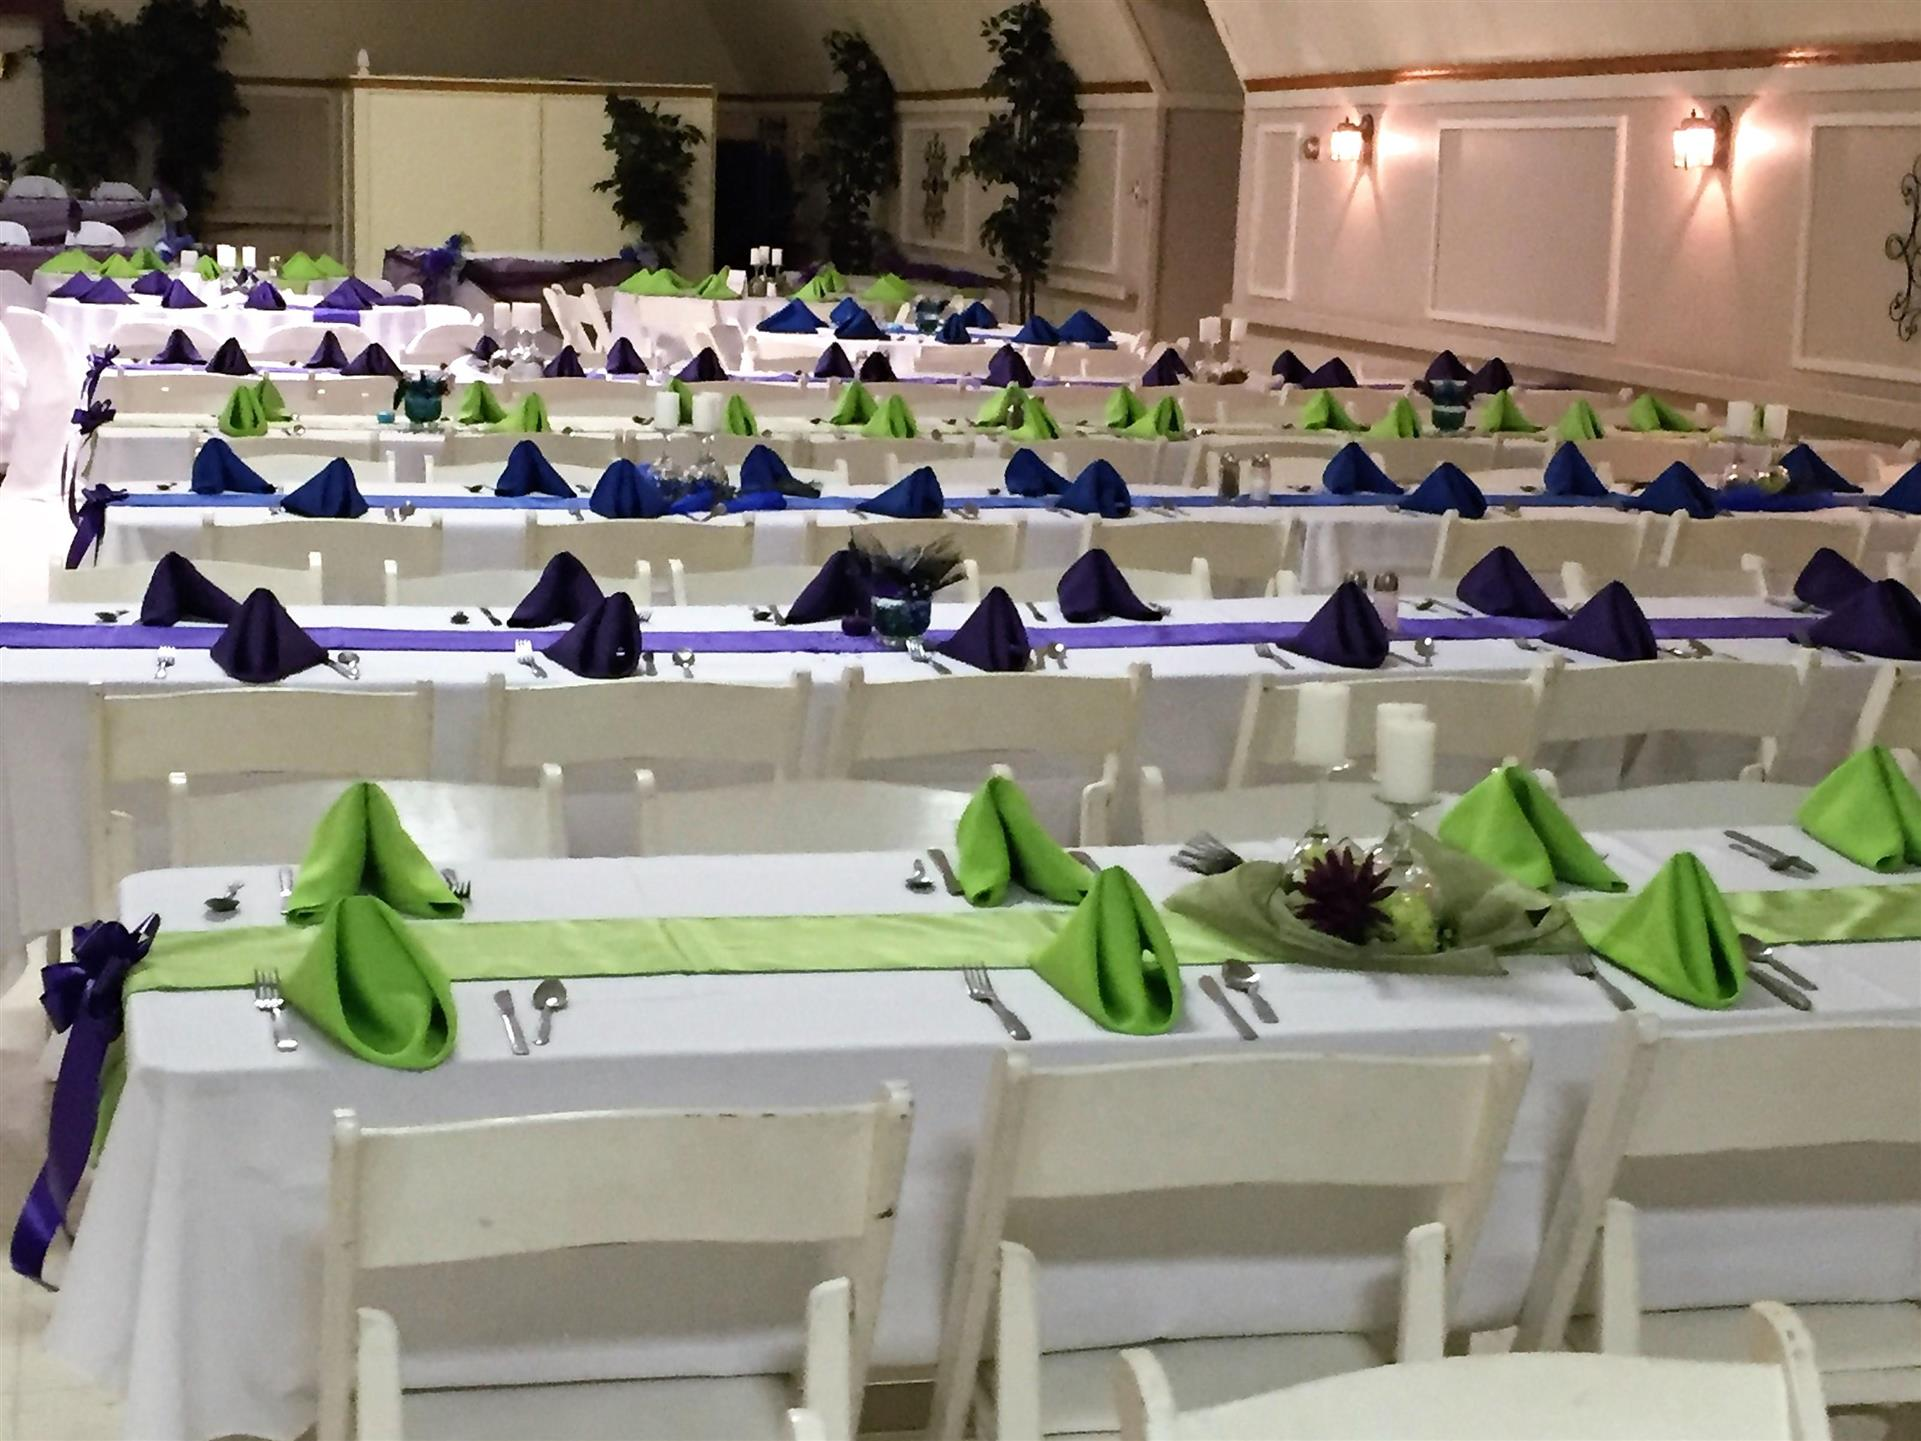 set of long tables setup with tablecloths, folded napkins and ribbon decorations